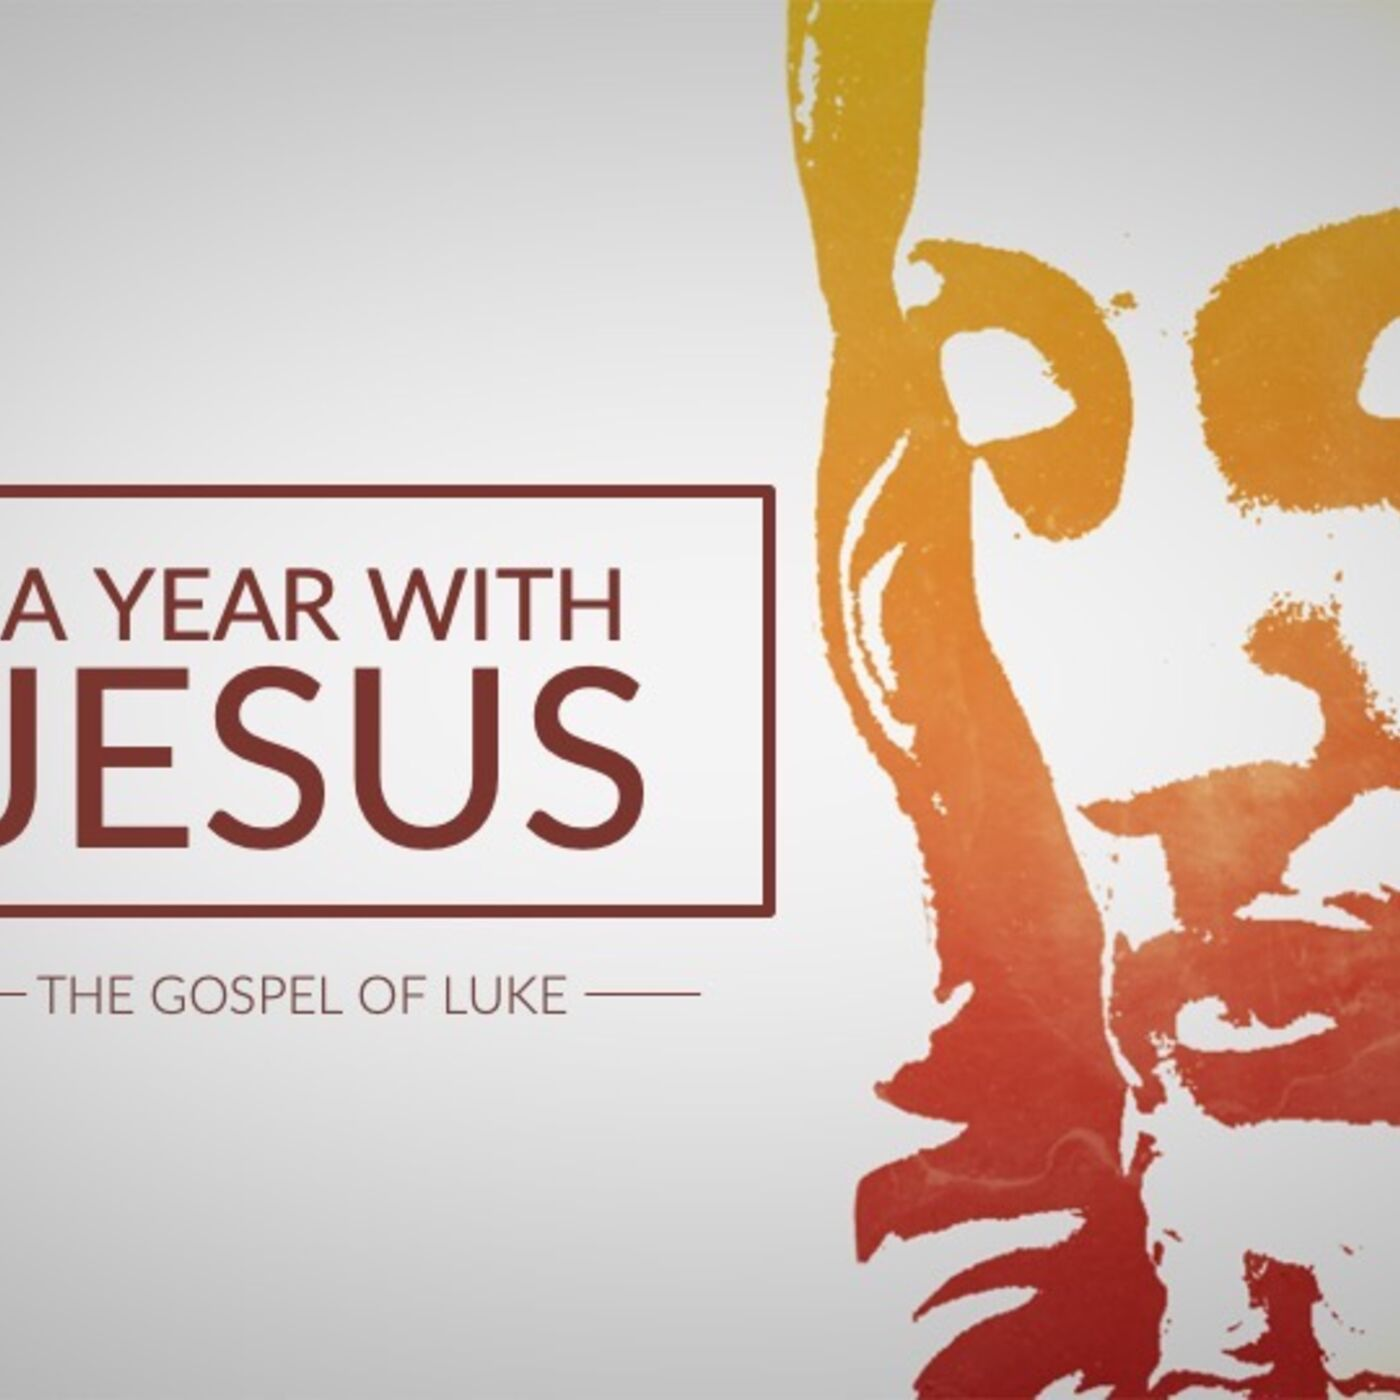 A Year With Jesus: Jesus and the Strong Man (Luke 11:14-28)